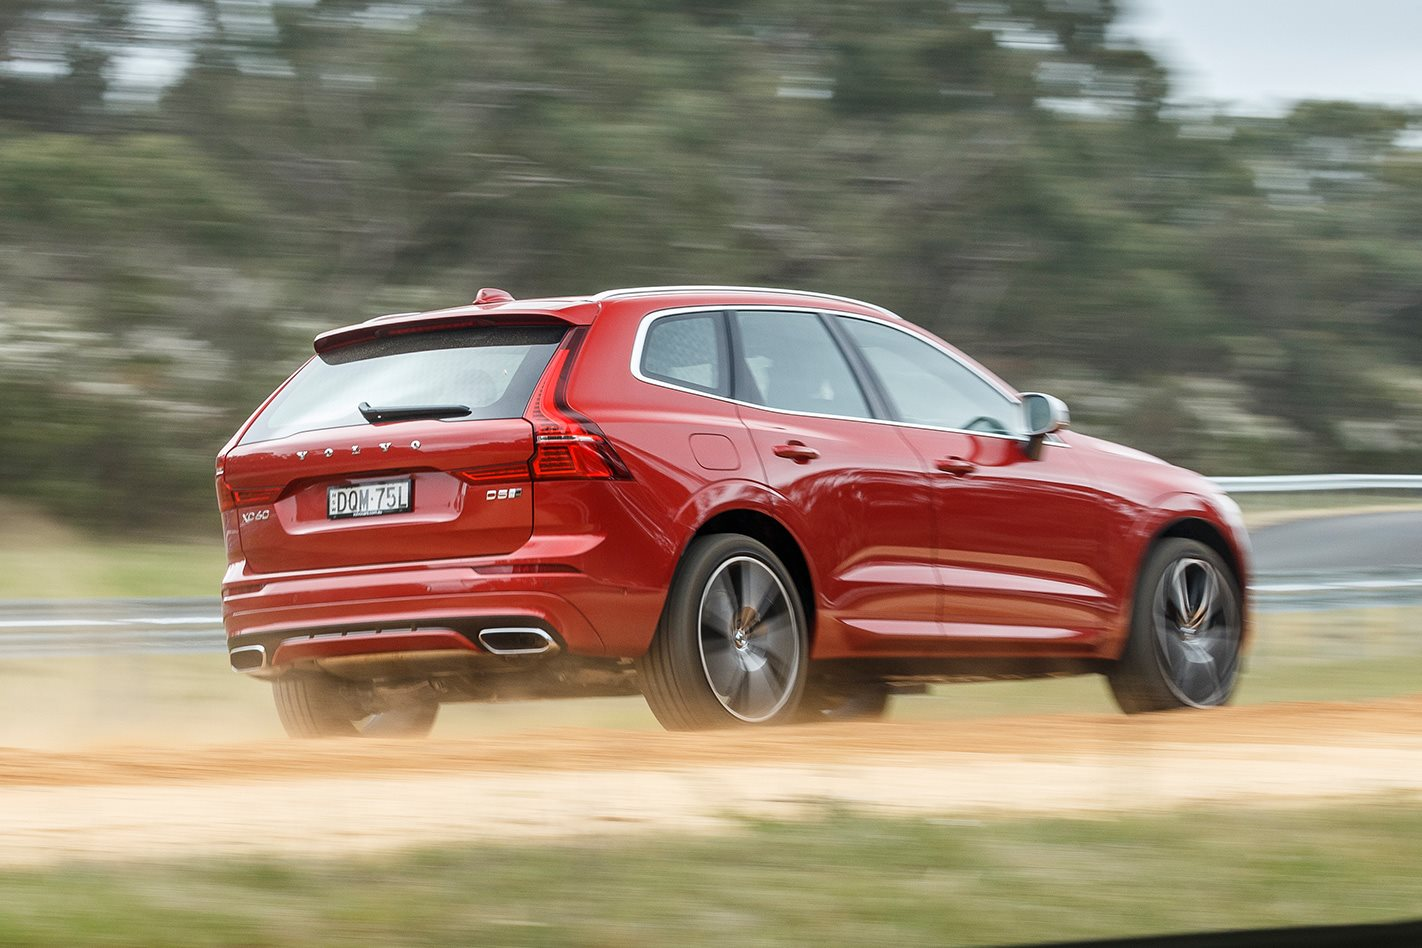 2018 Volvo XC60 D5 R-Design quick review